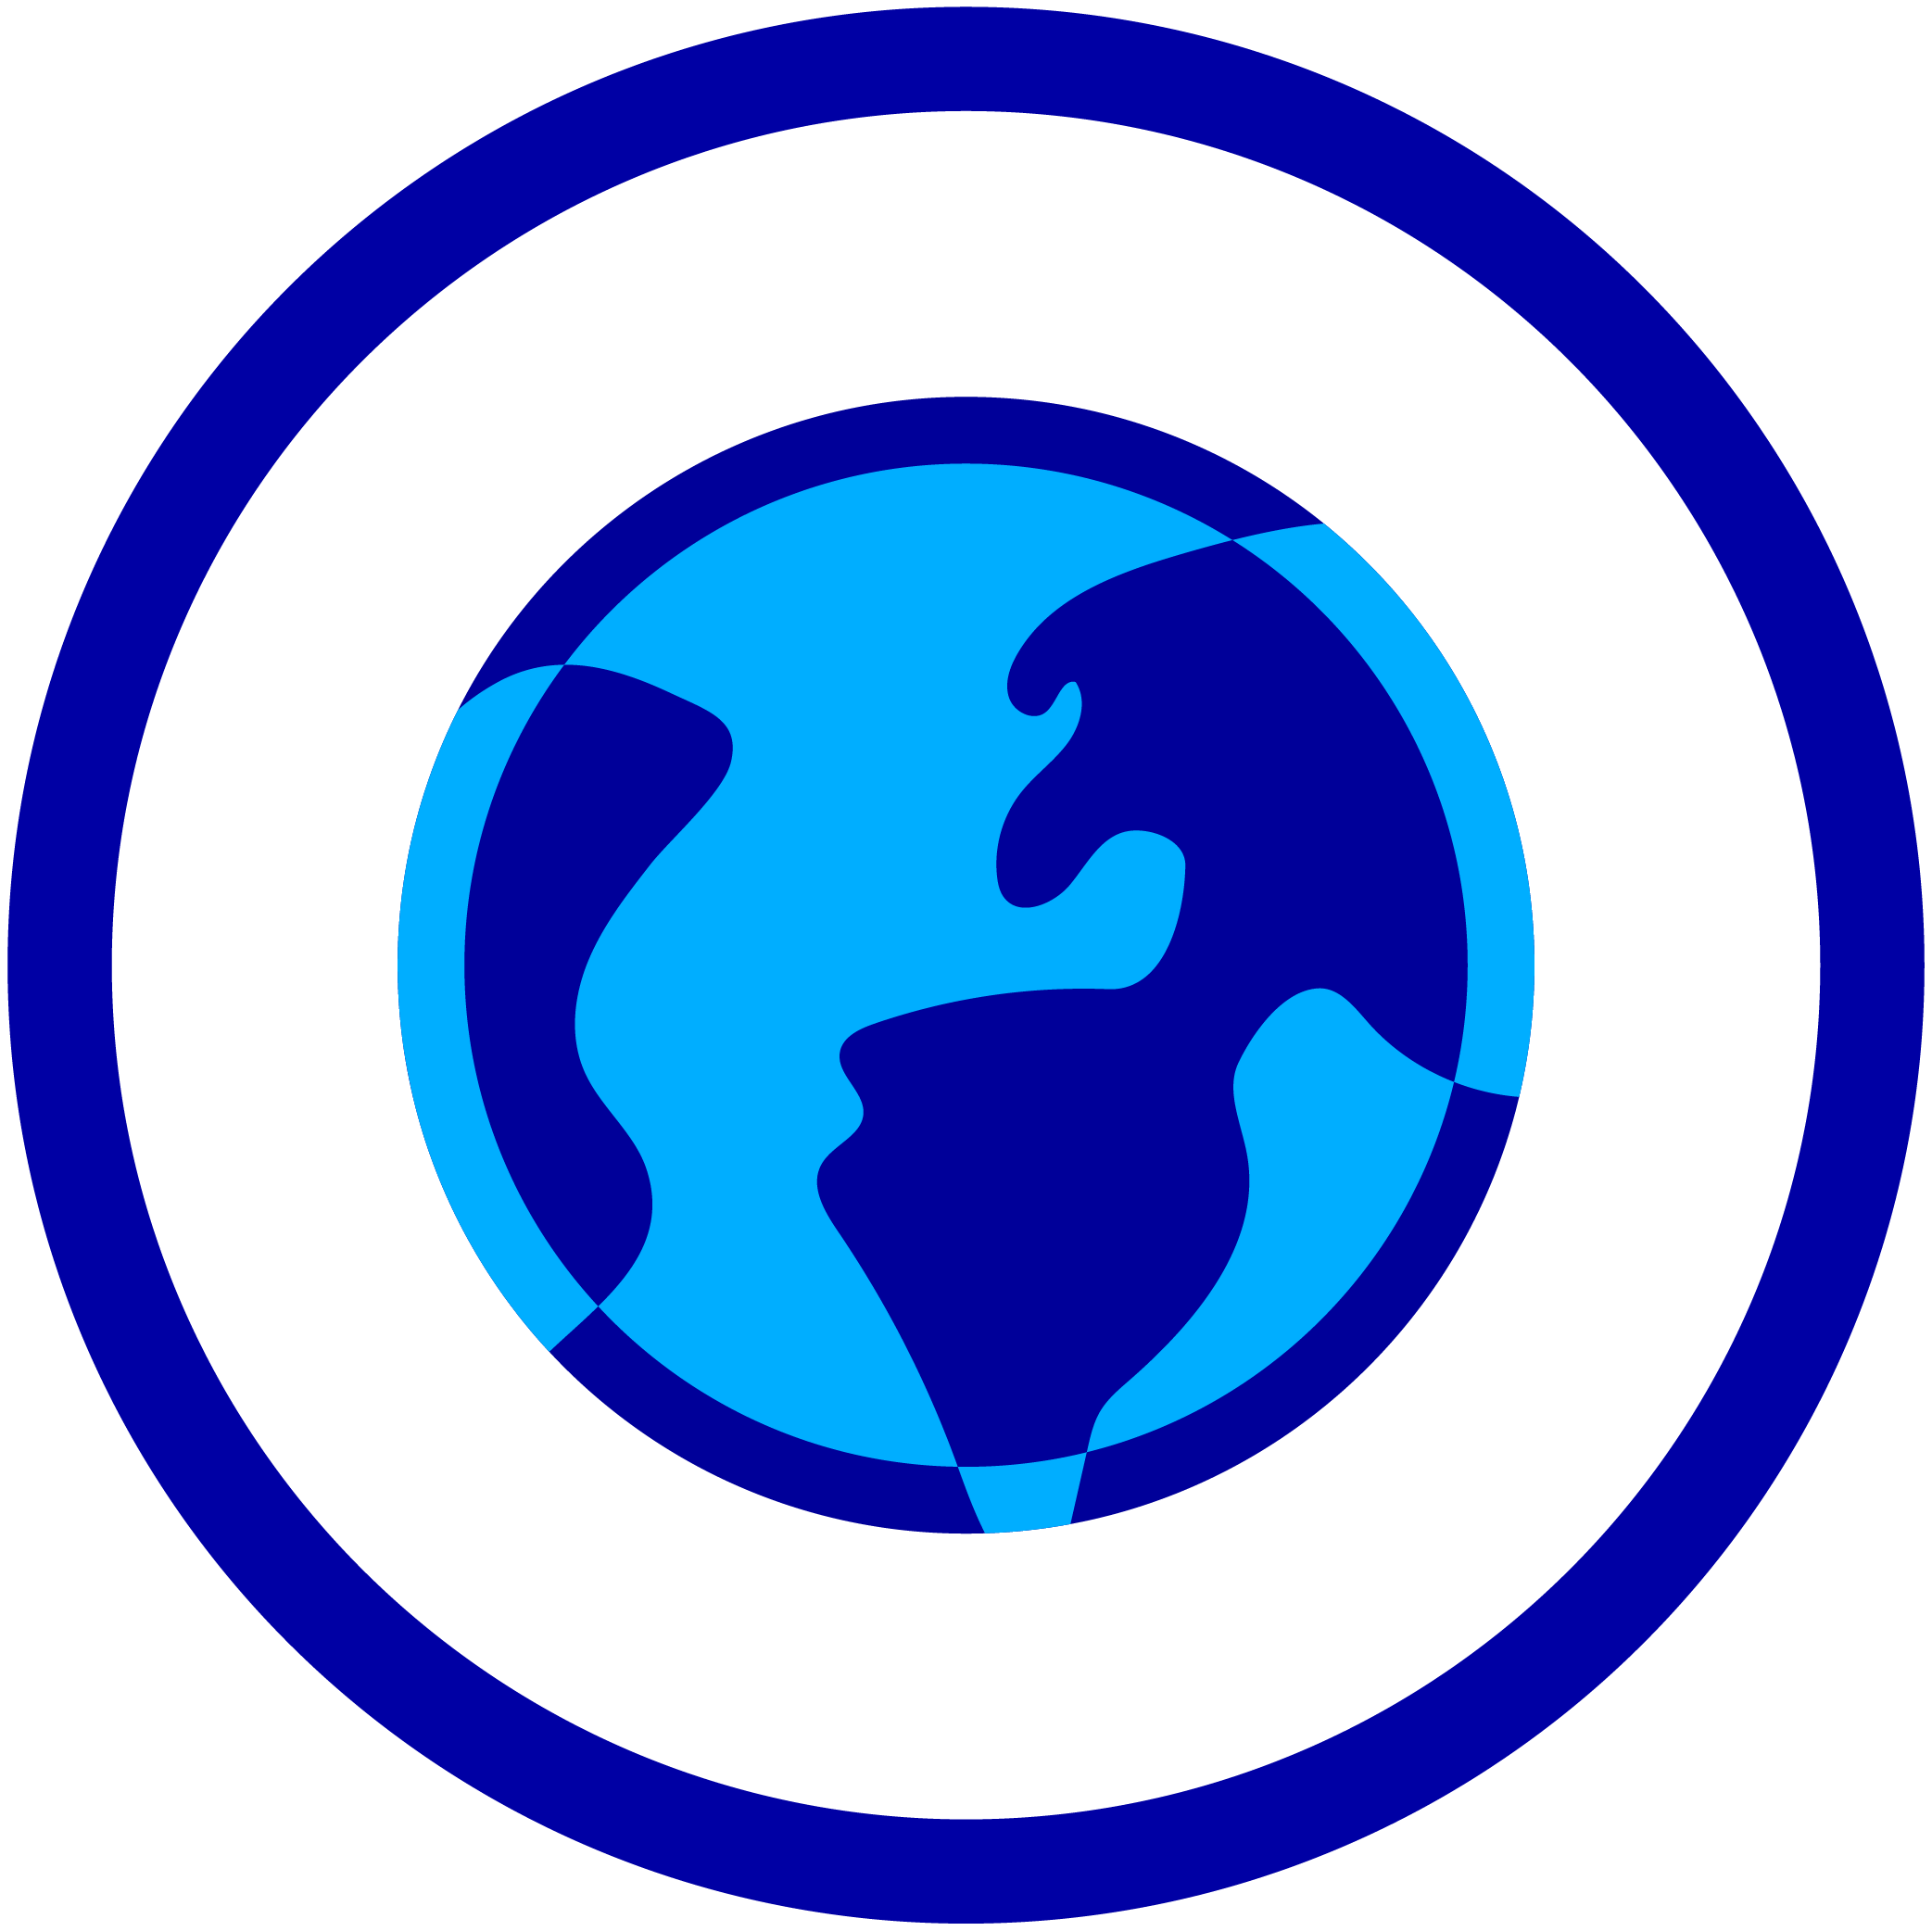 https://de.fi-group.com/wp-content/uploads/sites/19/2021/02/blue-icons-set_1-13.png